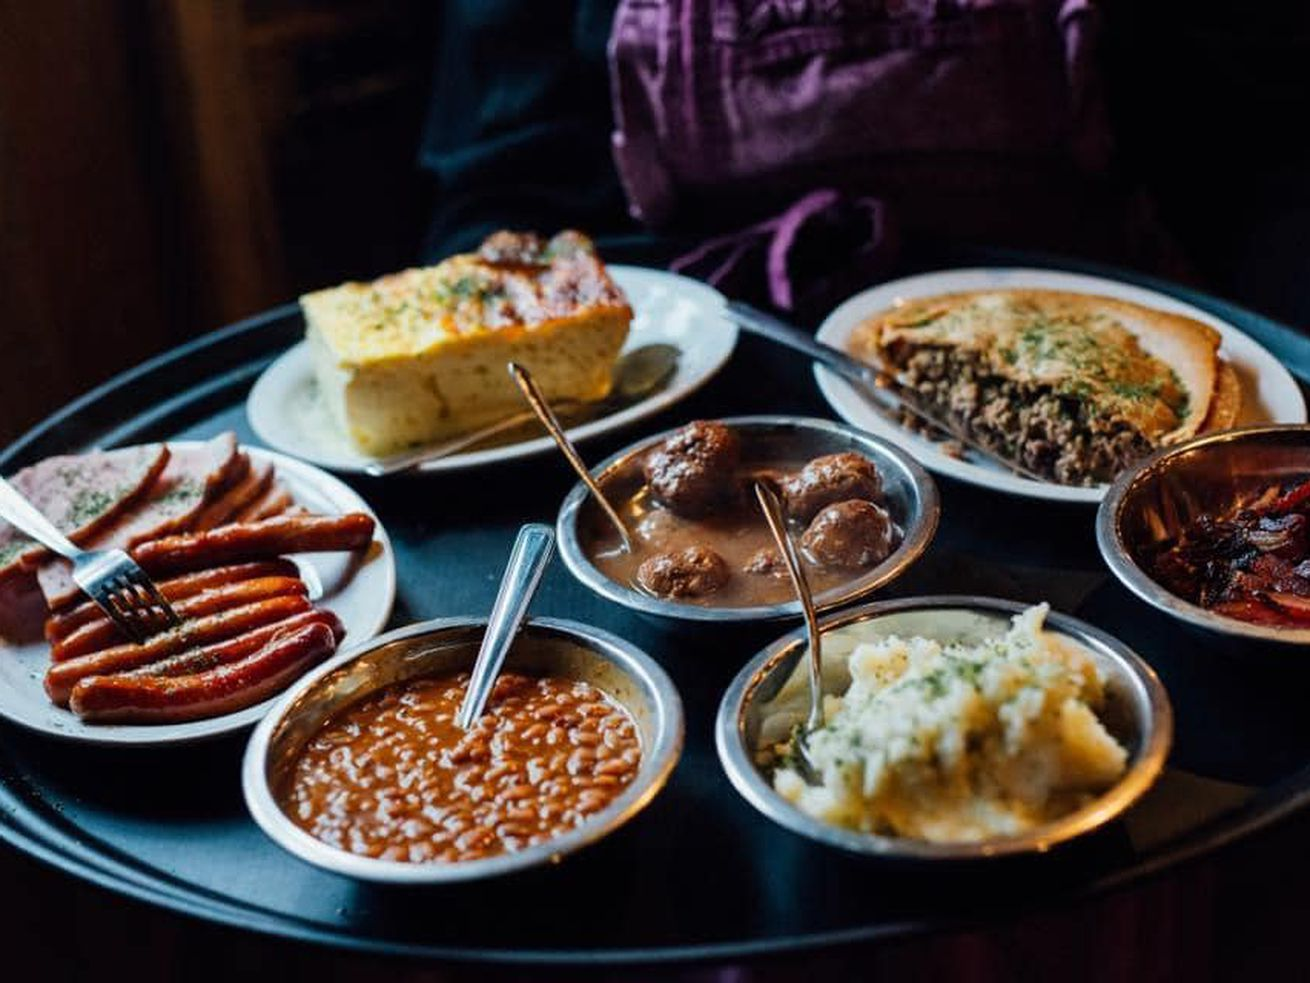 spread of traditional sugar shack dishes like beans, omelette, meat pie